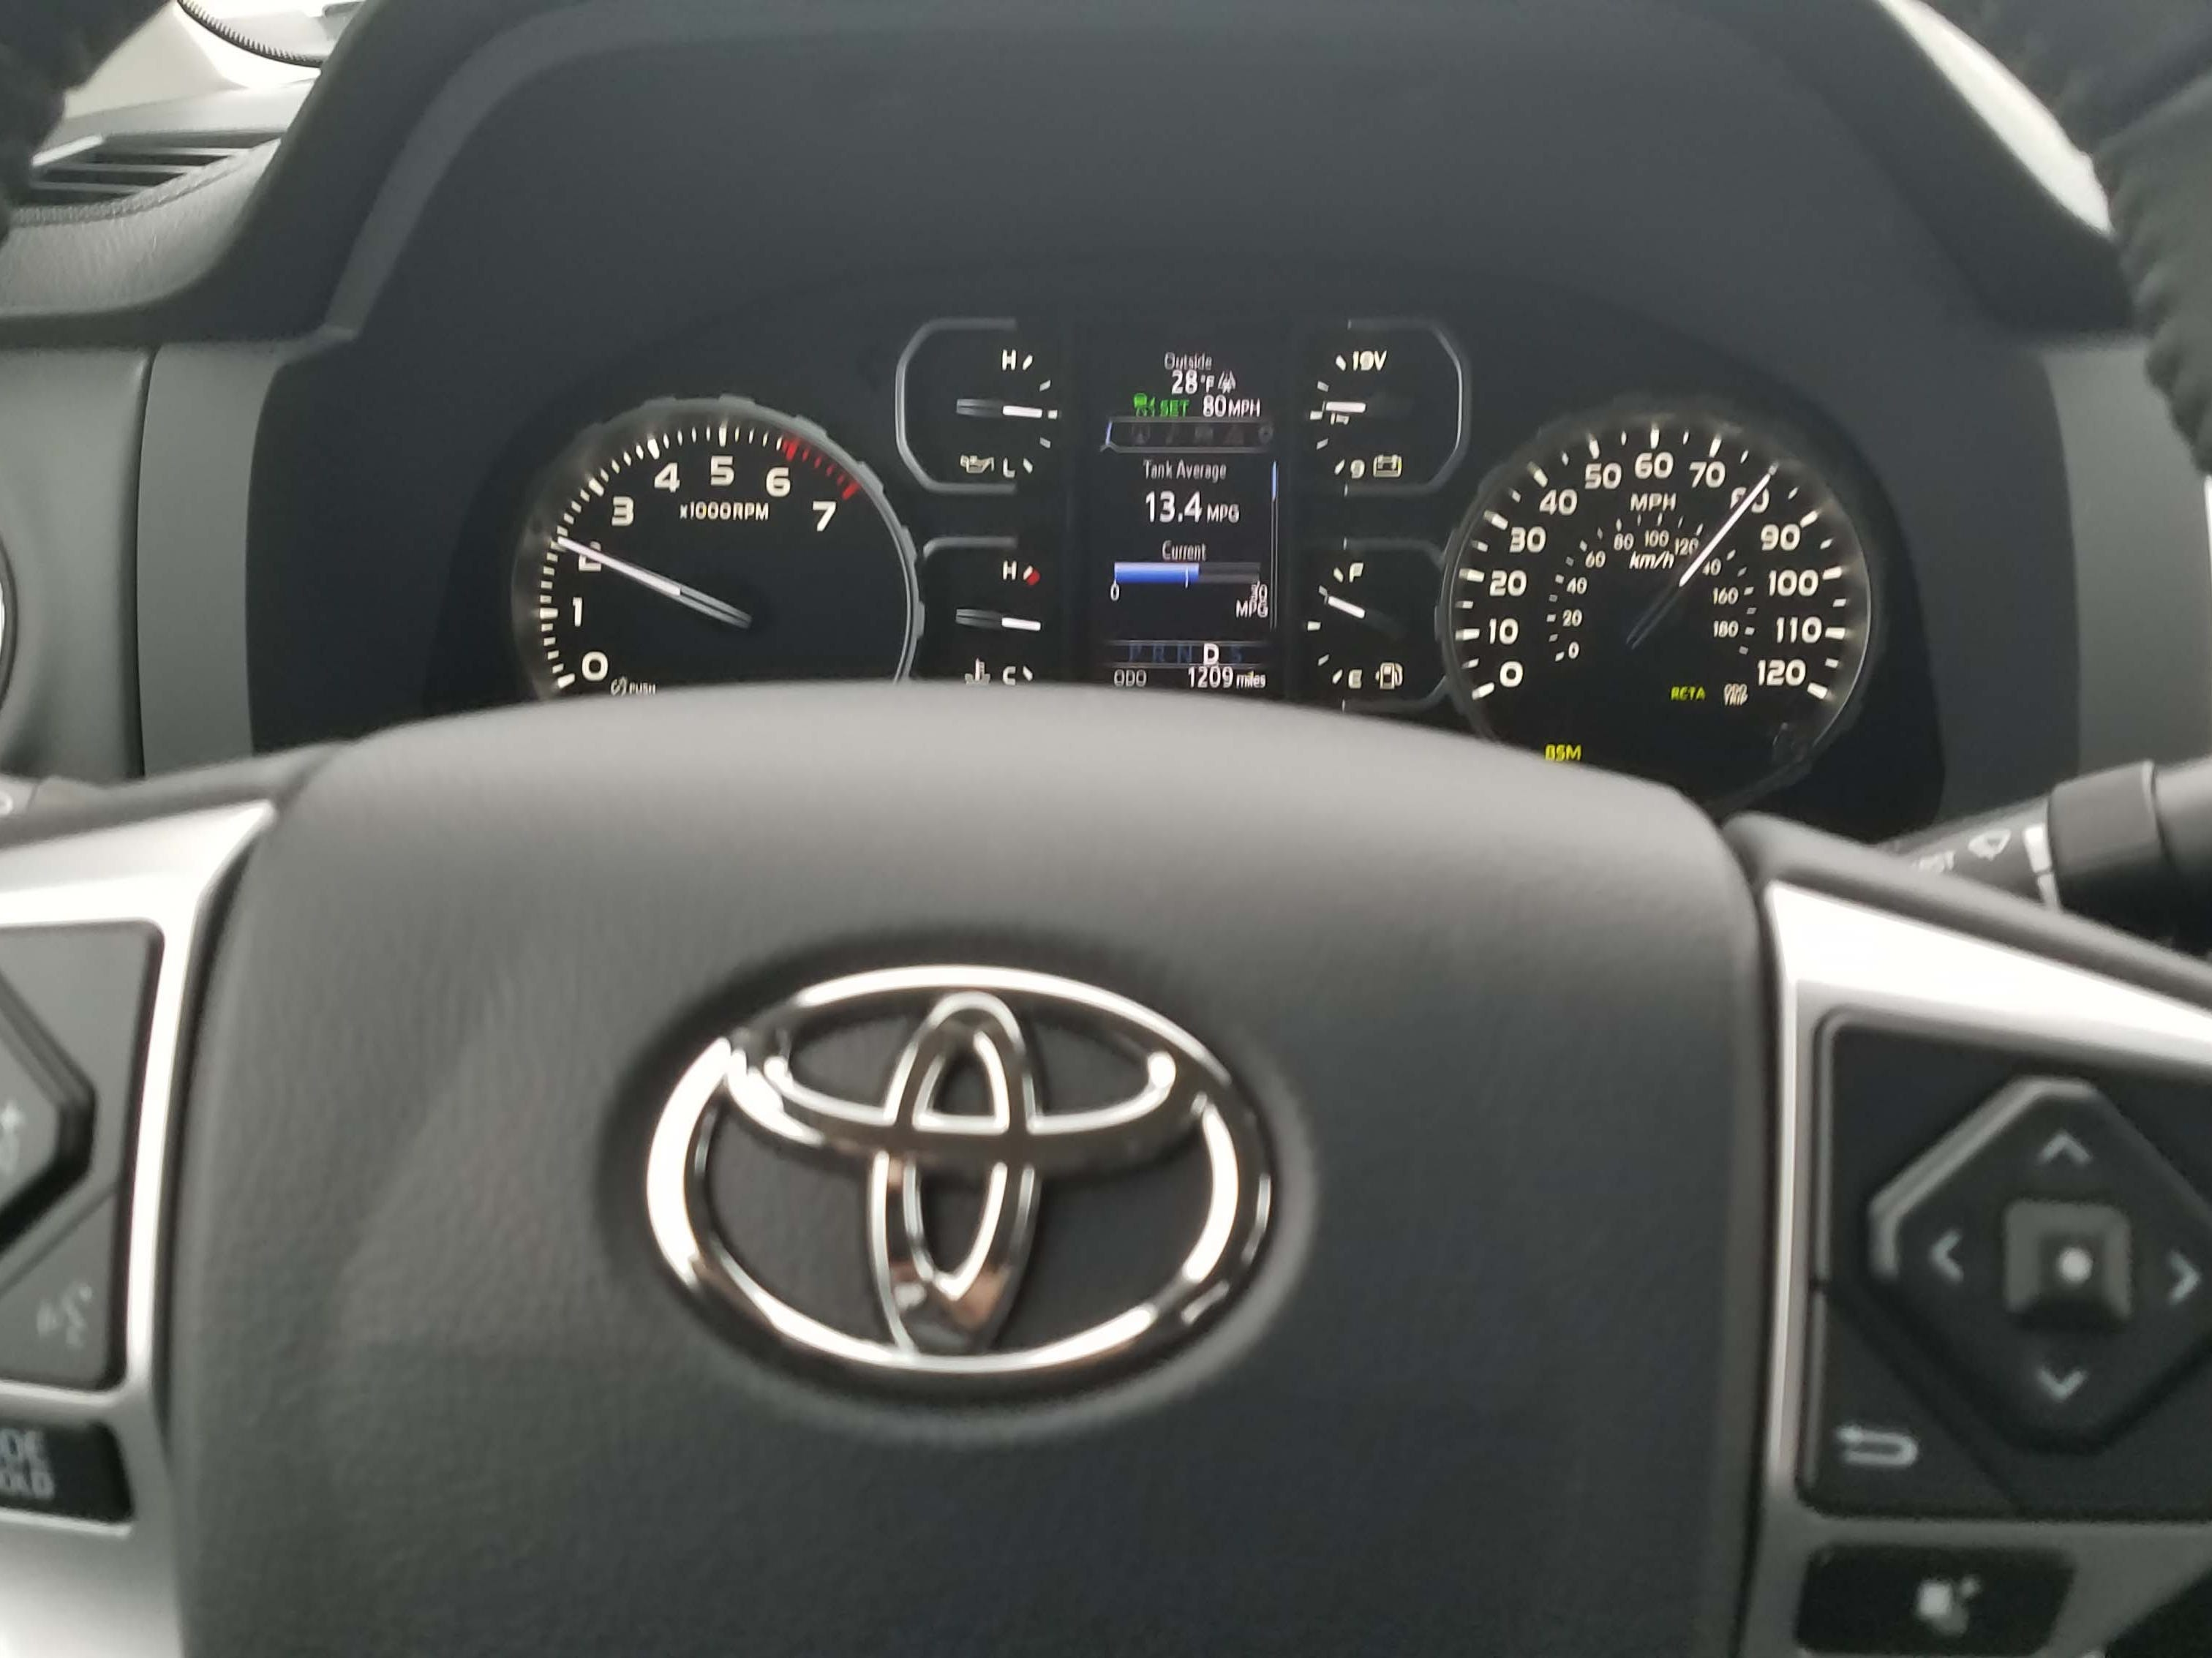 The 2019 Toyota Tundra Limited comes with lots of standard options like adaptive cruise control and pedestrian detection. The V-8 does guzzle gas at 14 mpg on average.